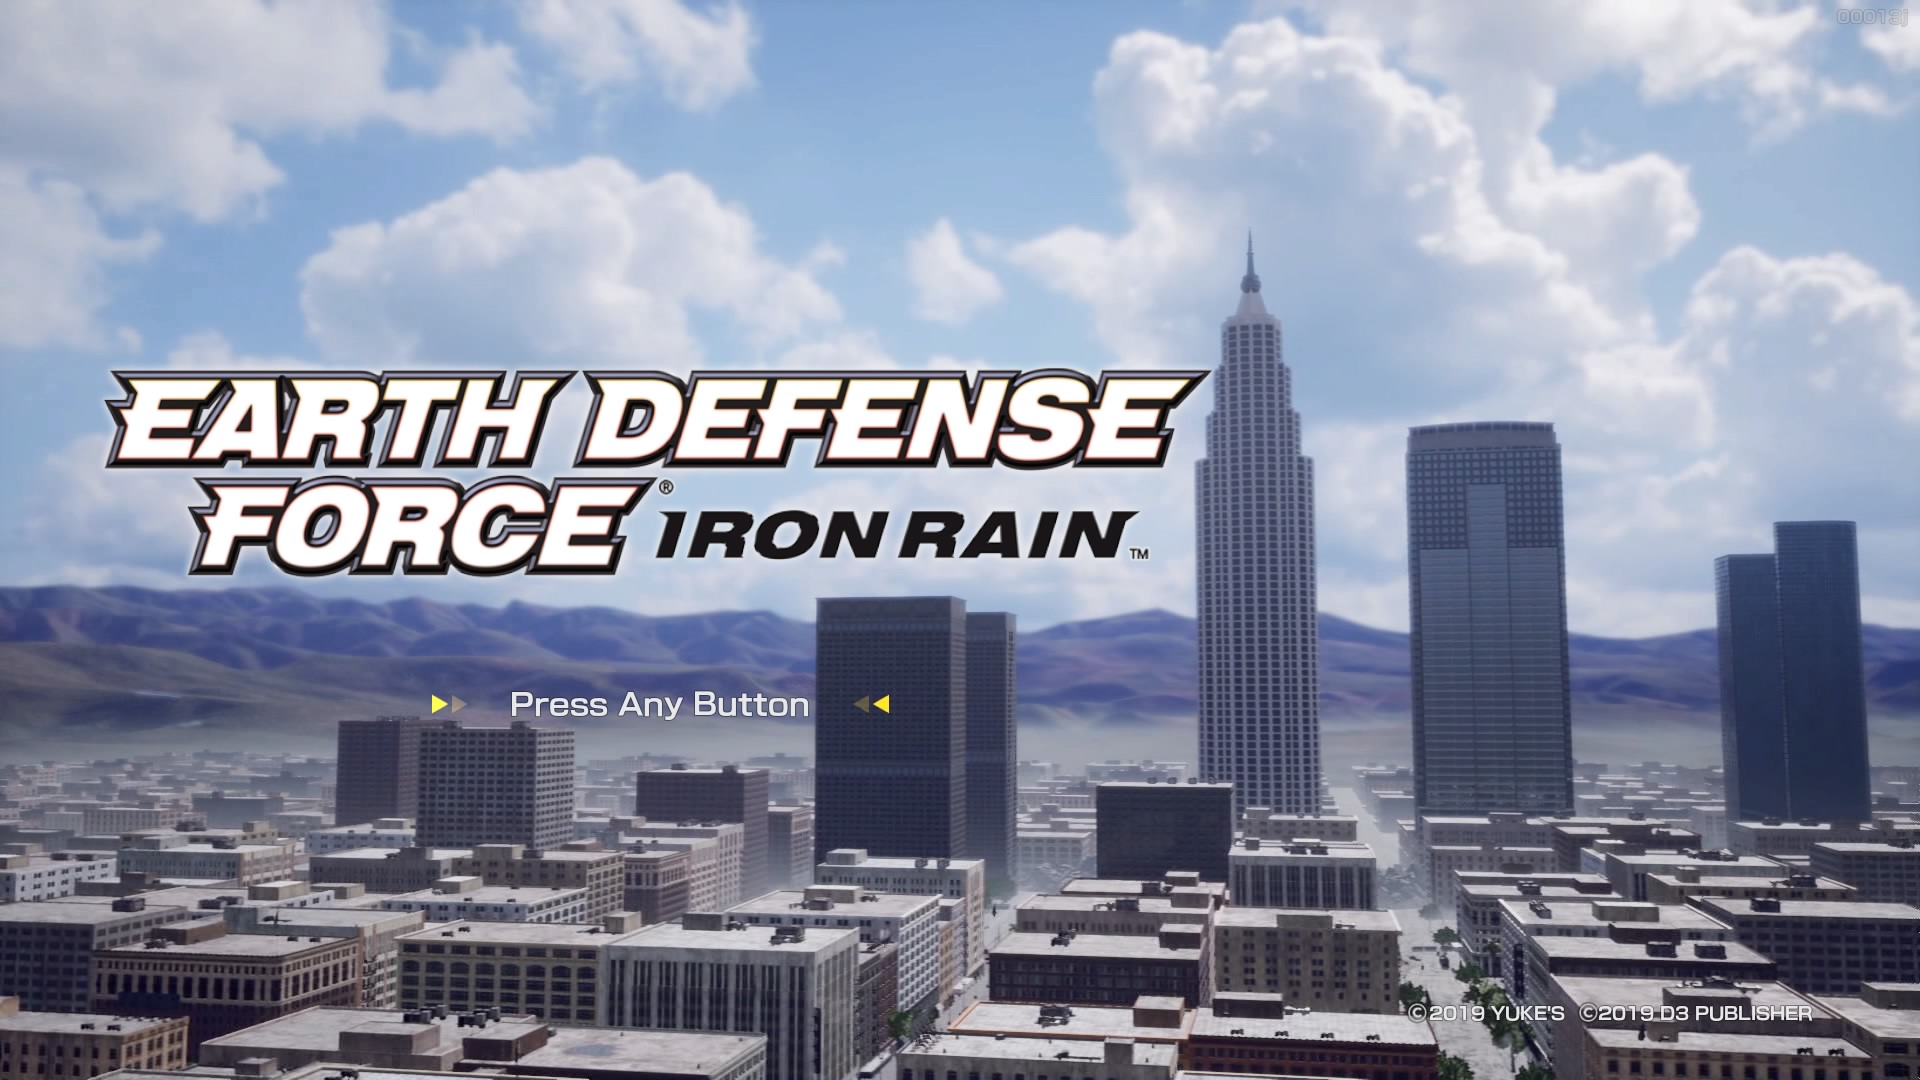 EARTH DEFFENSE FORCE IRON RAIN(PS4)感想・レビュー